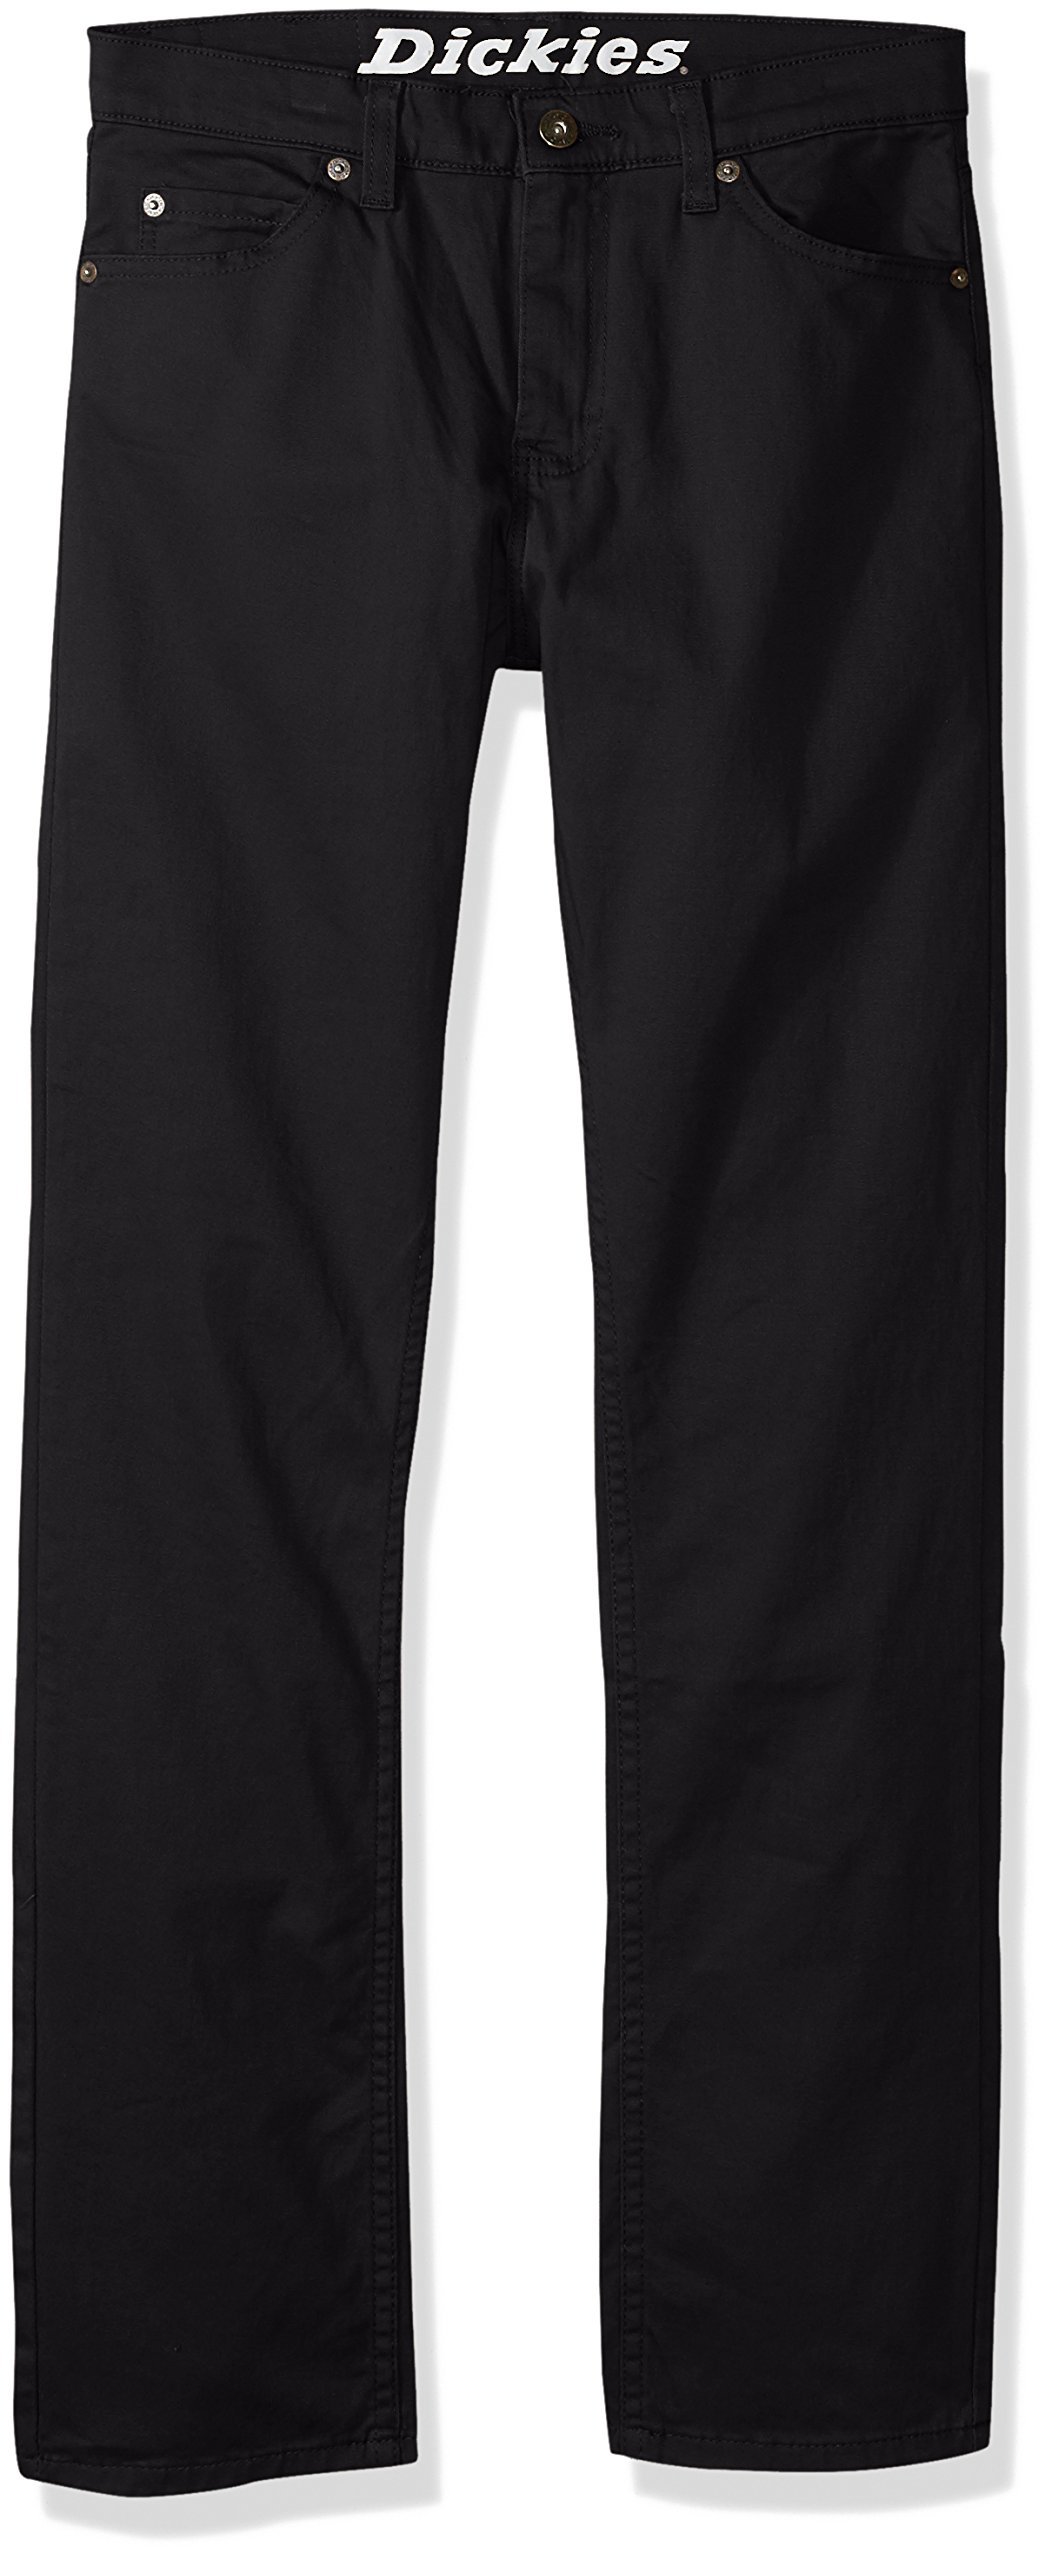 dickies Boys' Big Flex Twill Pant-Slim Taper Fit, Rinsed Black, 10 by dickies